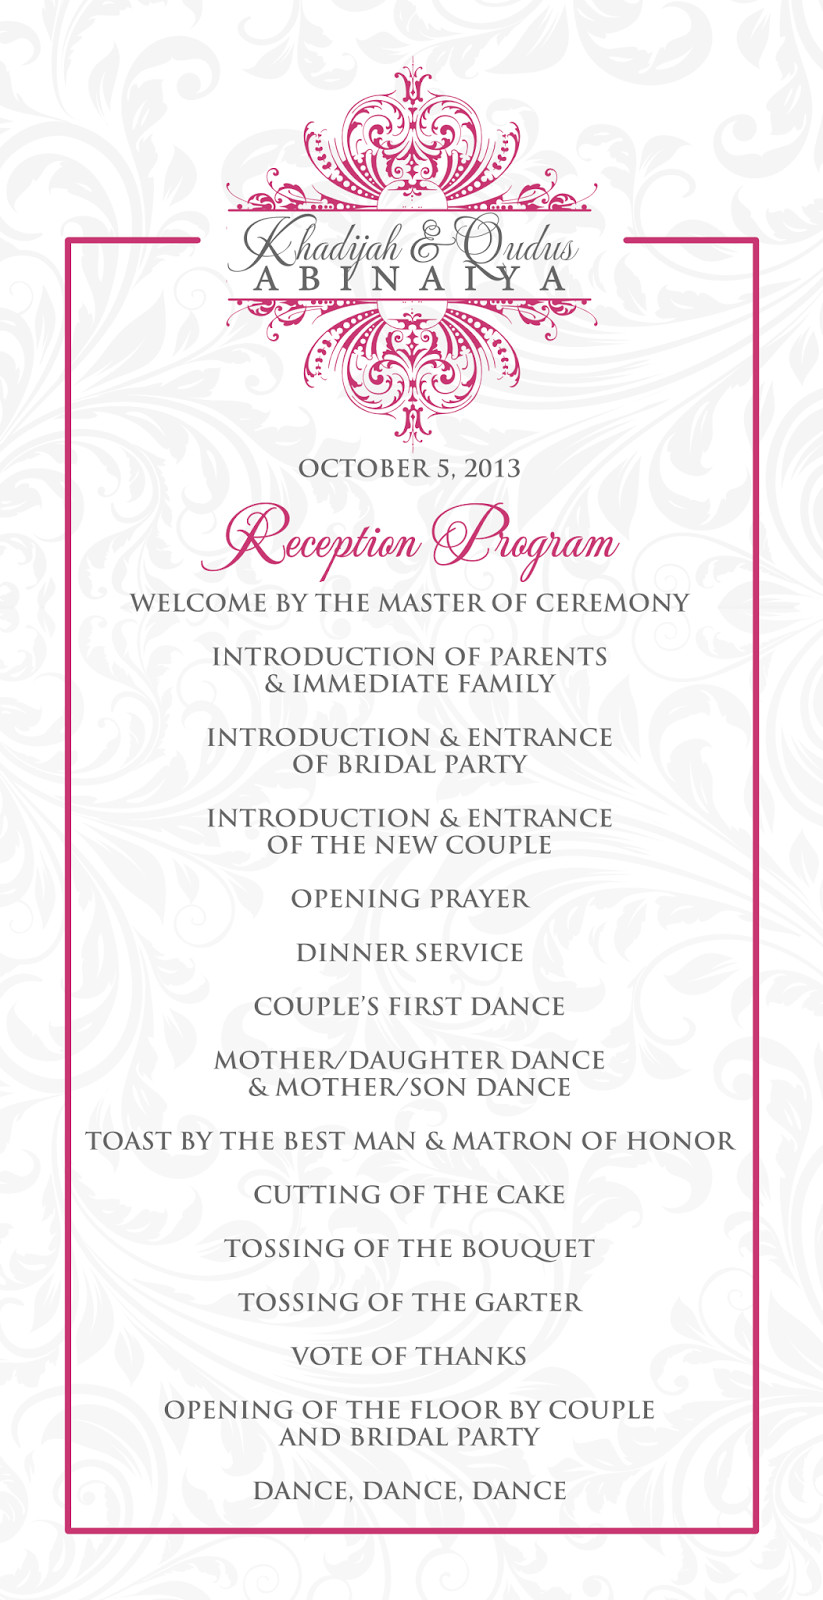 Wedding Reception Program Templates Signatures by Sarah Wedding Stationery for Khadijah